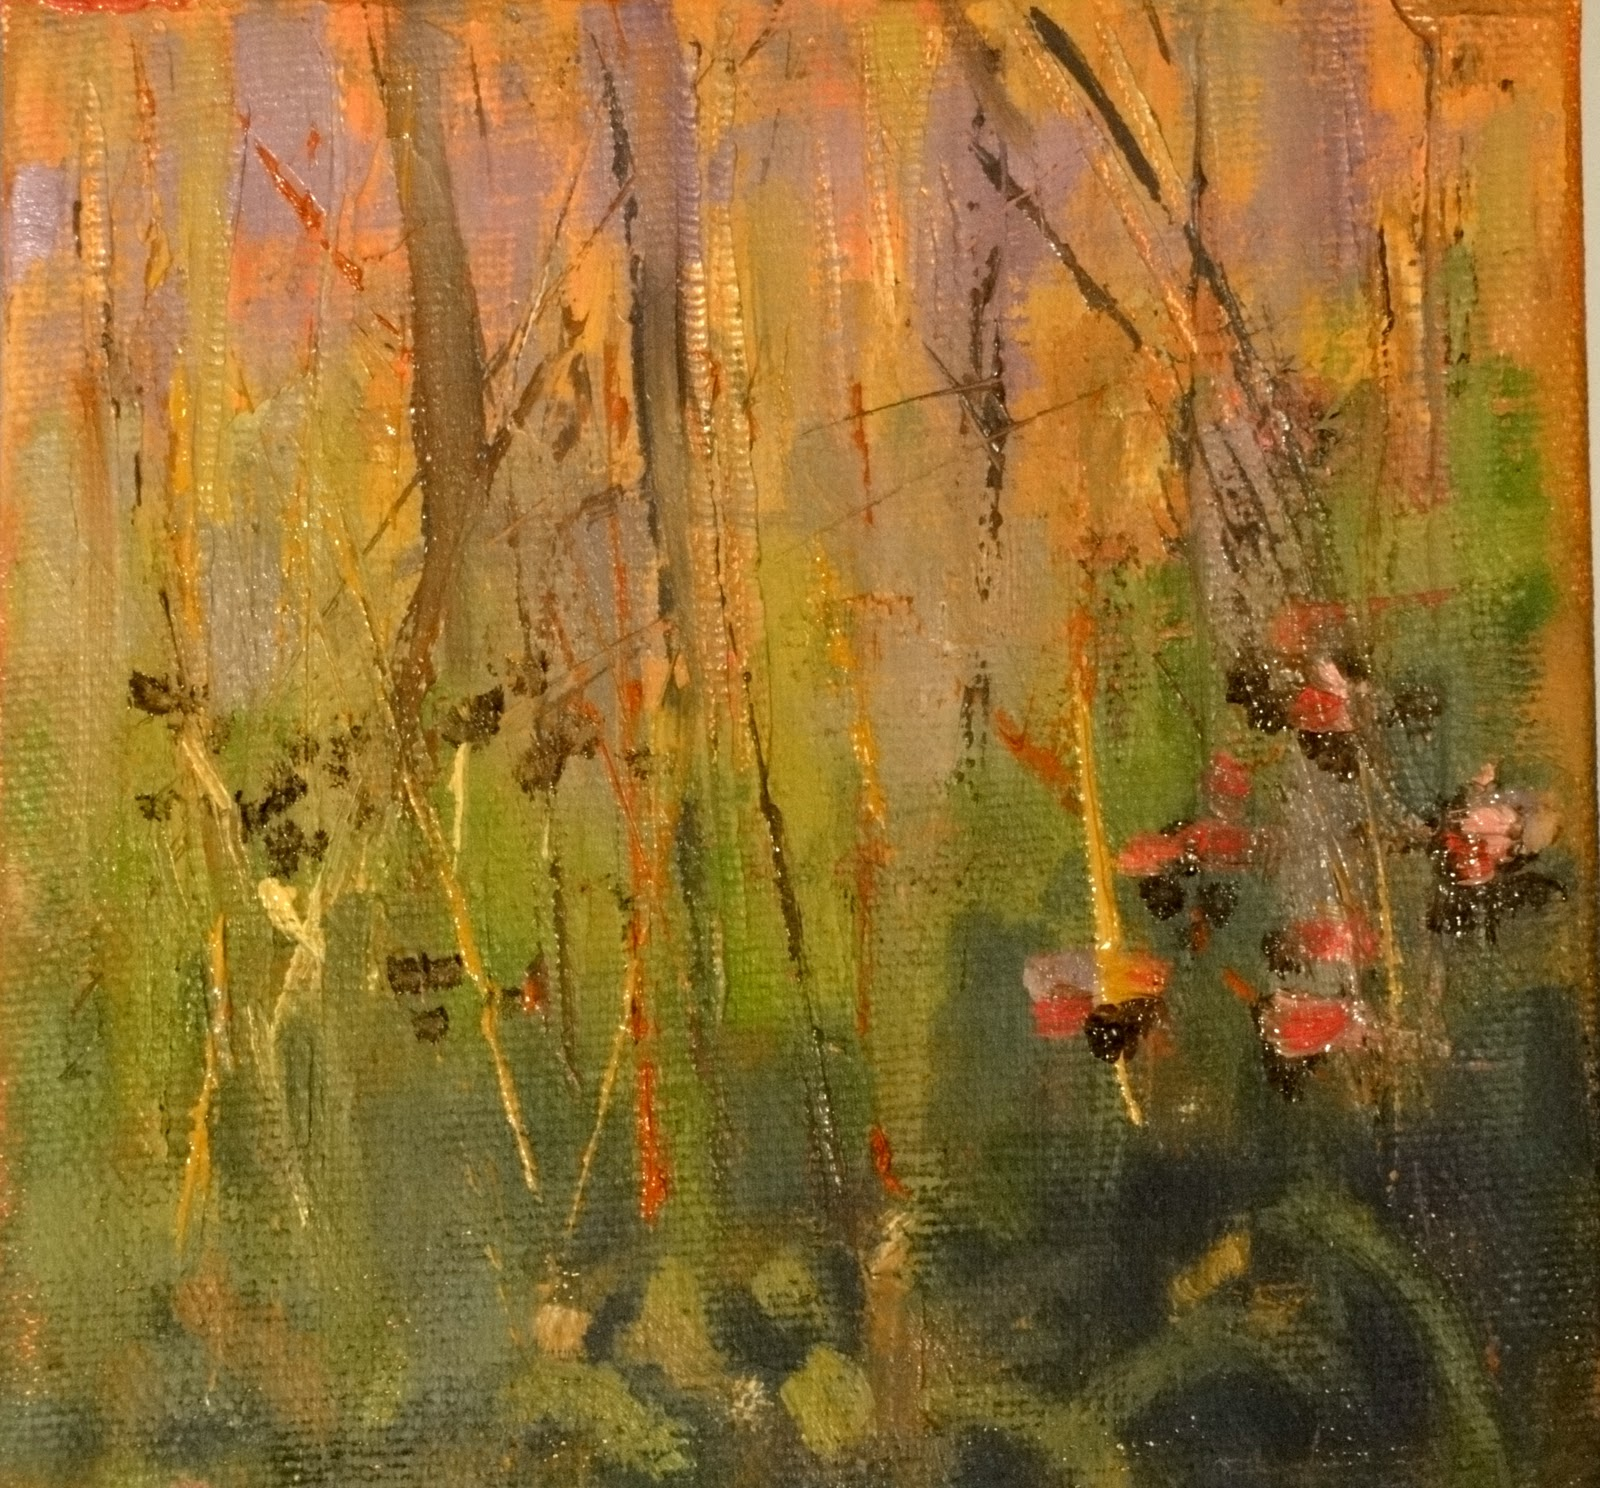 """Tall Grass Study, Crabtree Forest Preserve, 5x5 (Sold)"" original fine art by Ann Feldman"